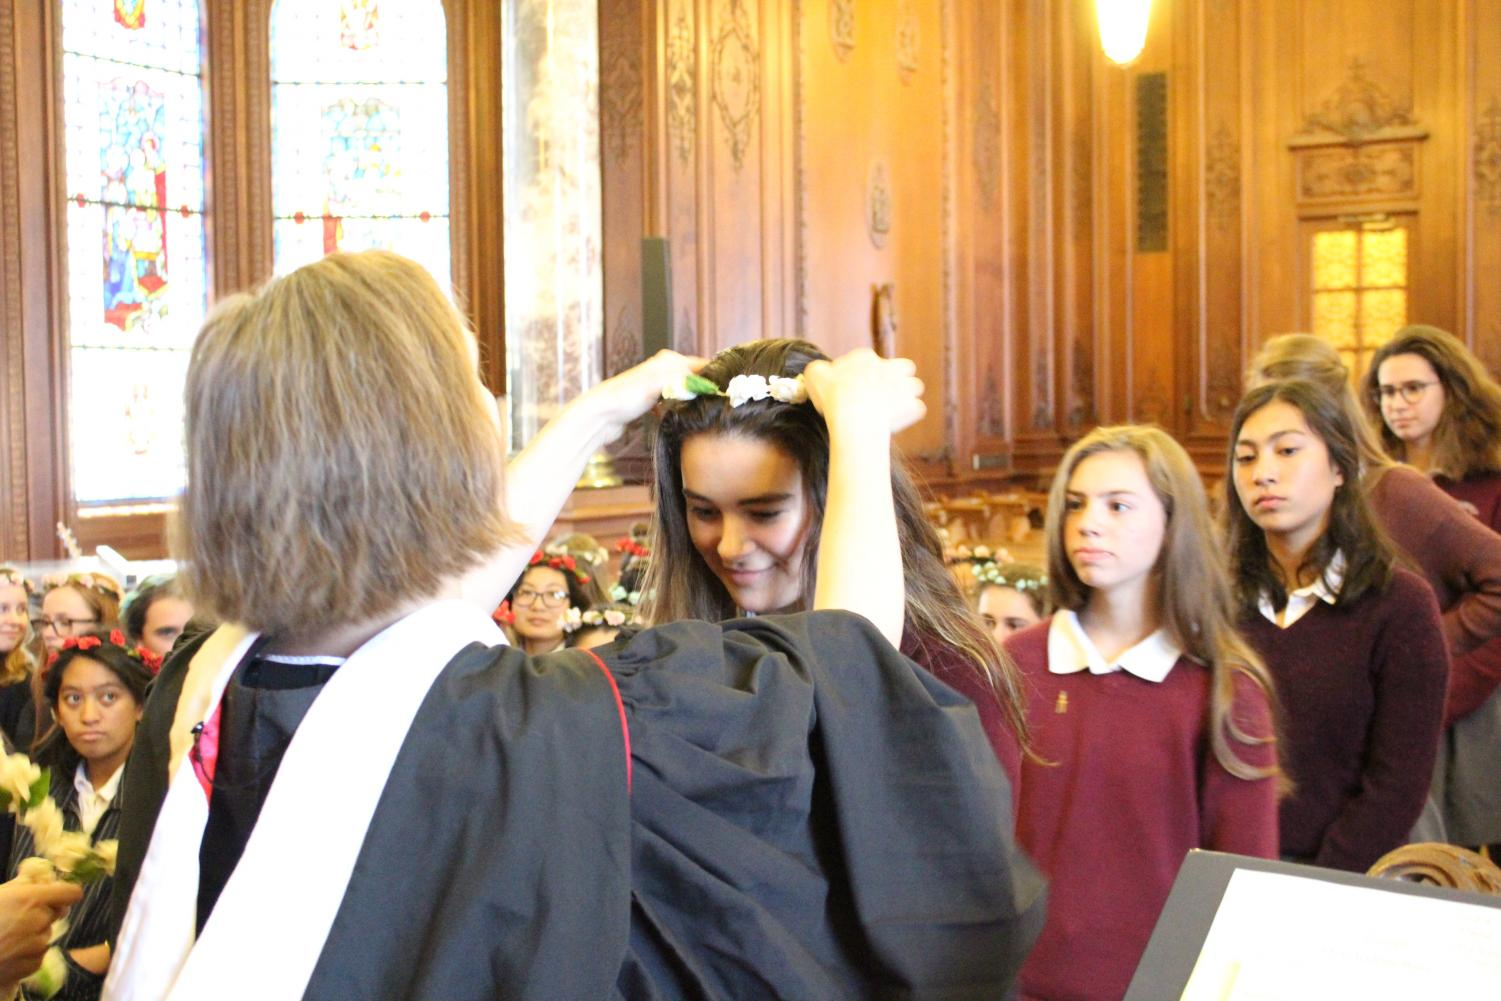 Head of School Rachel Simpson places a floral wreath on the head of sophomore Kate Hindley during the 131st annual Prize Day ceremony. Each student received an award signifying the completion of their academic year.